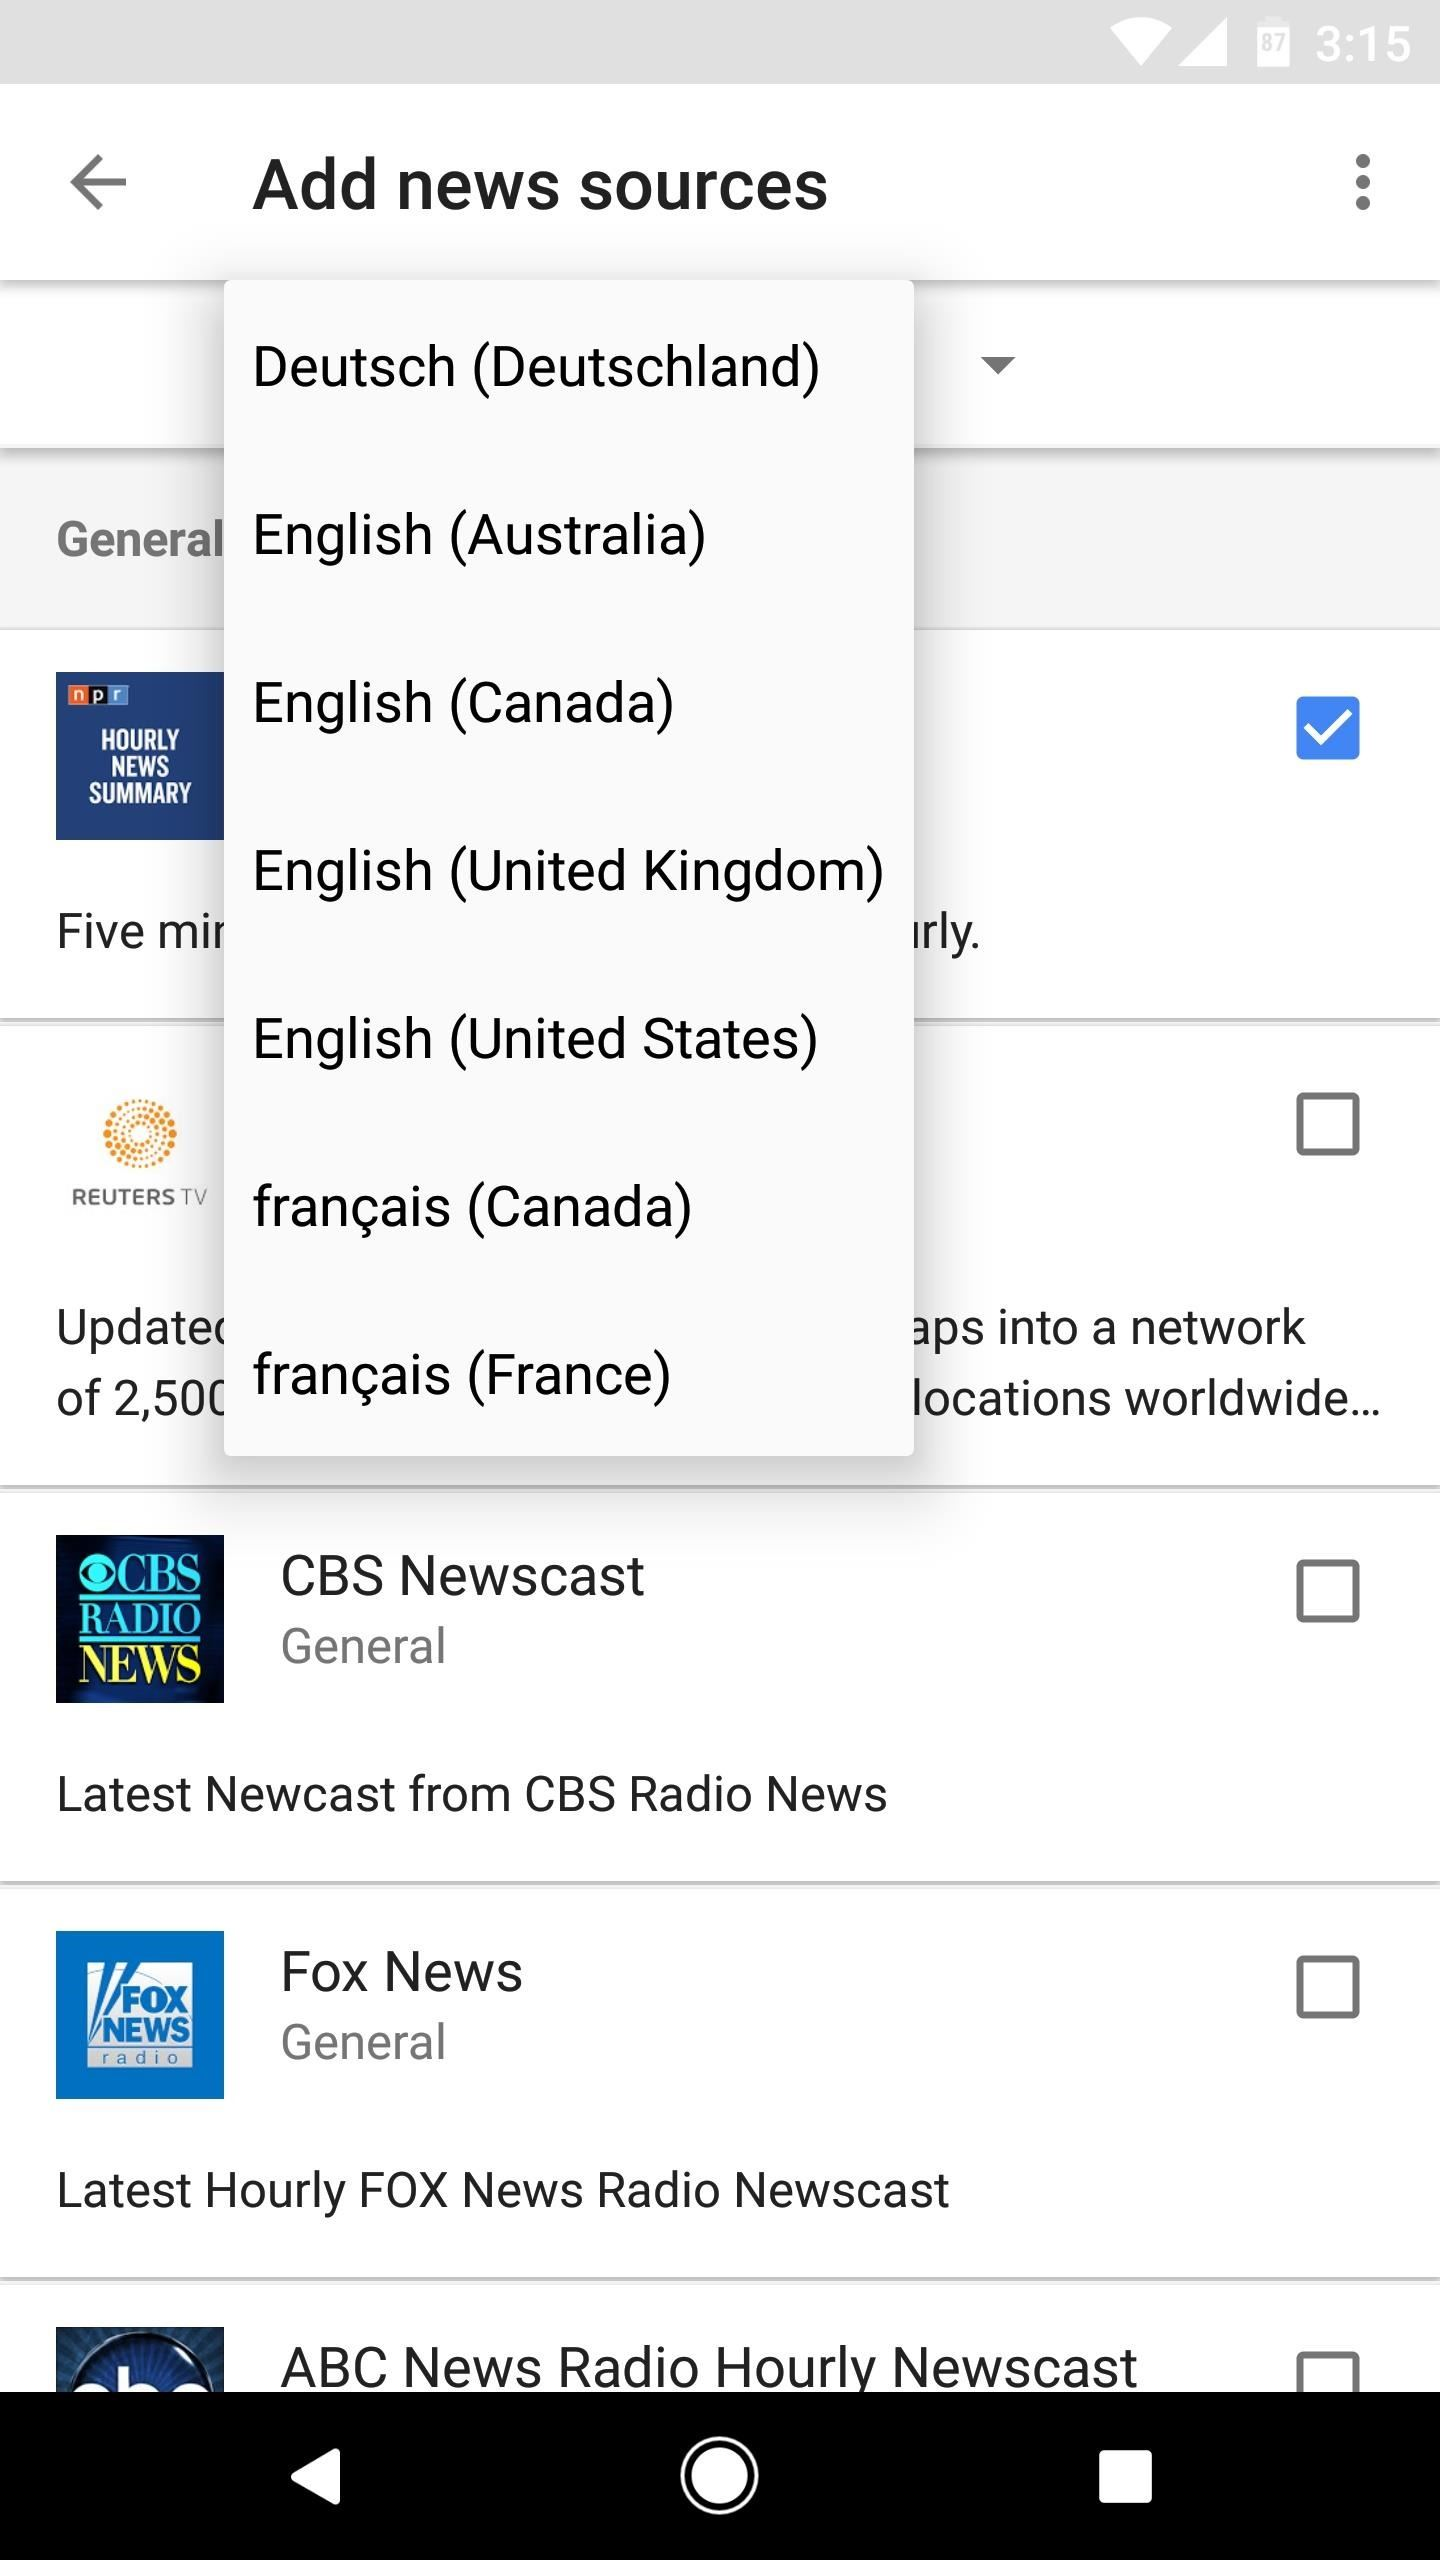 Google Assistant 101: How to Customize Your News Feed & 'My Day' Experience